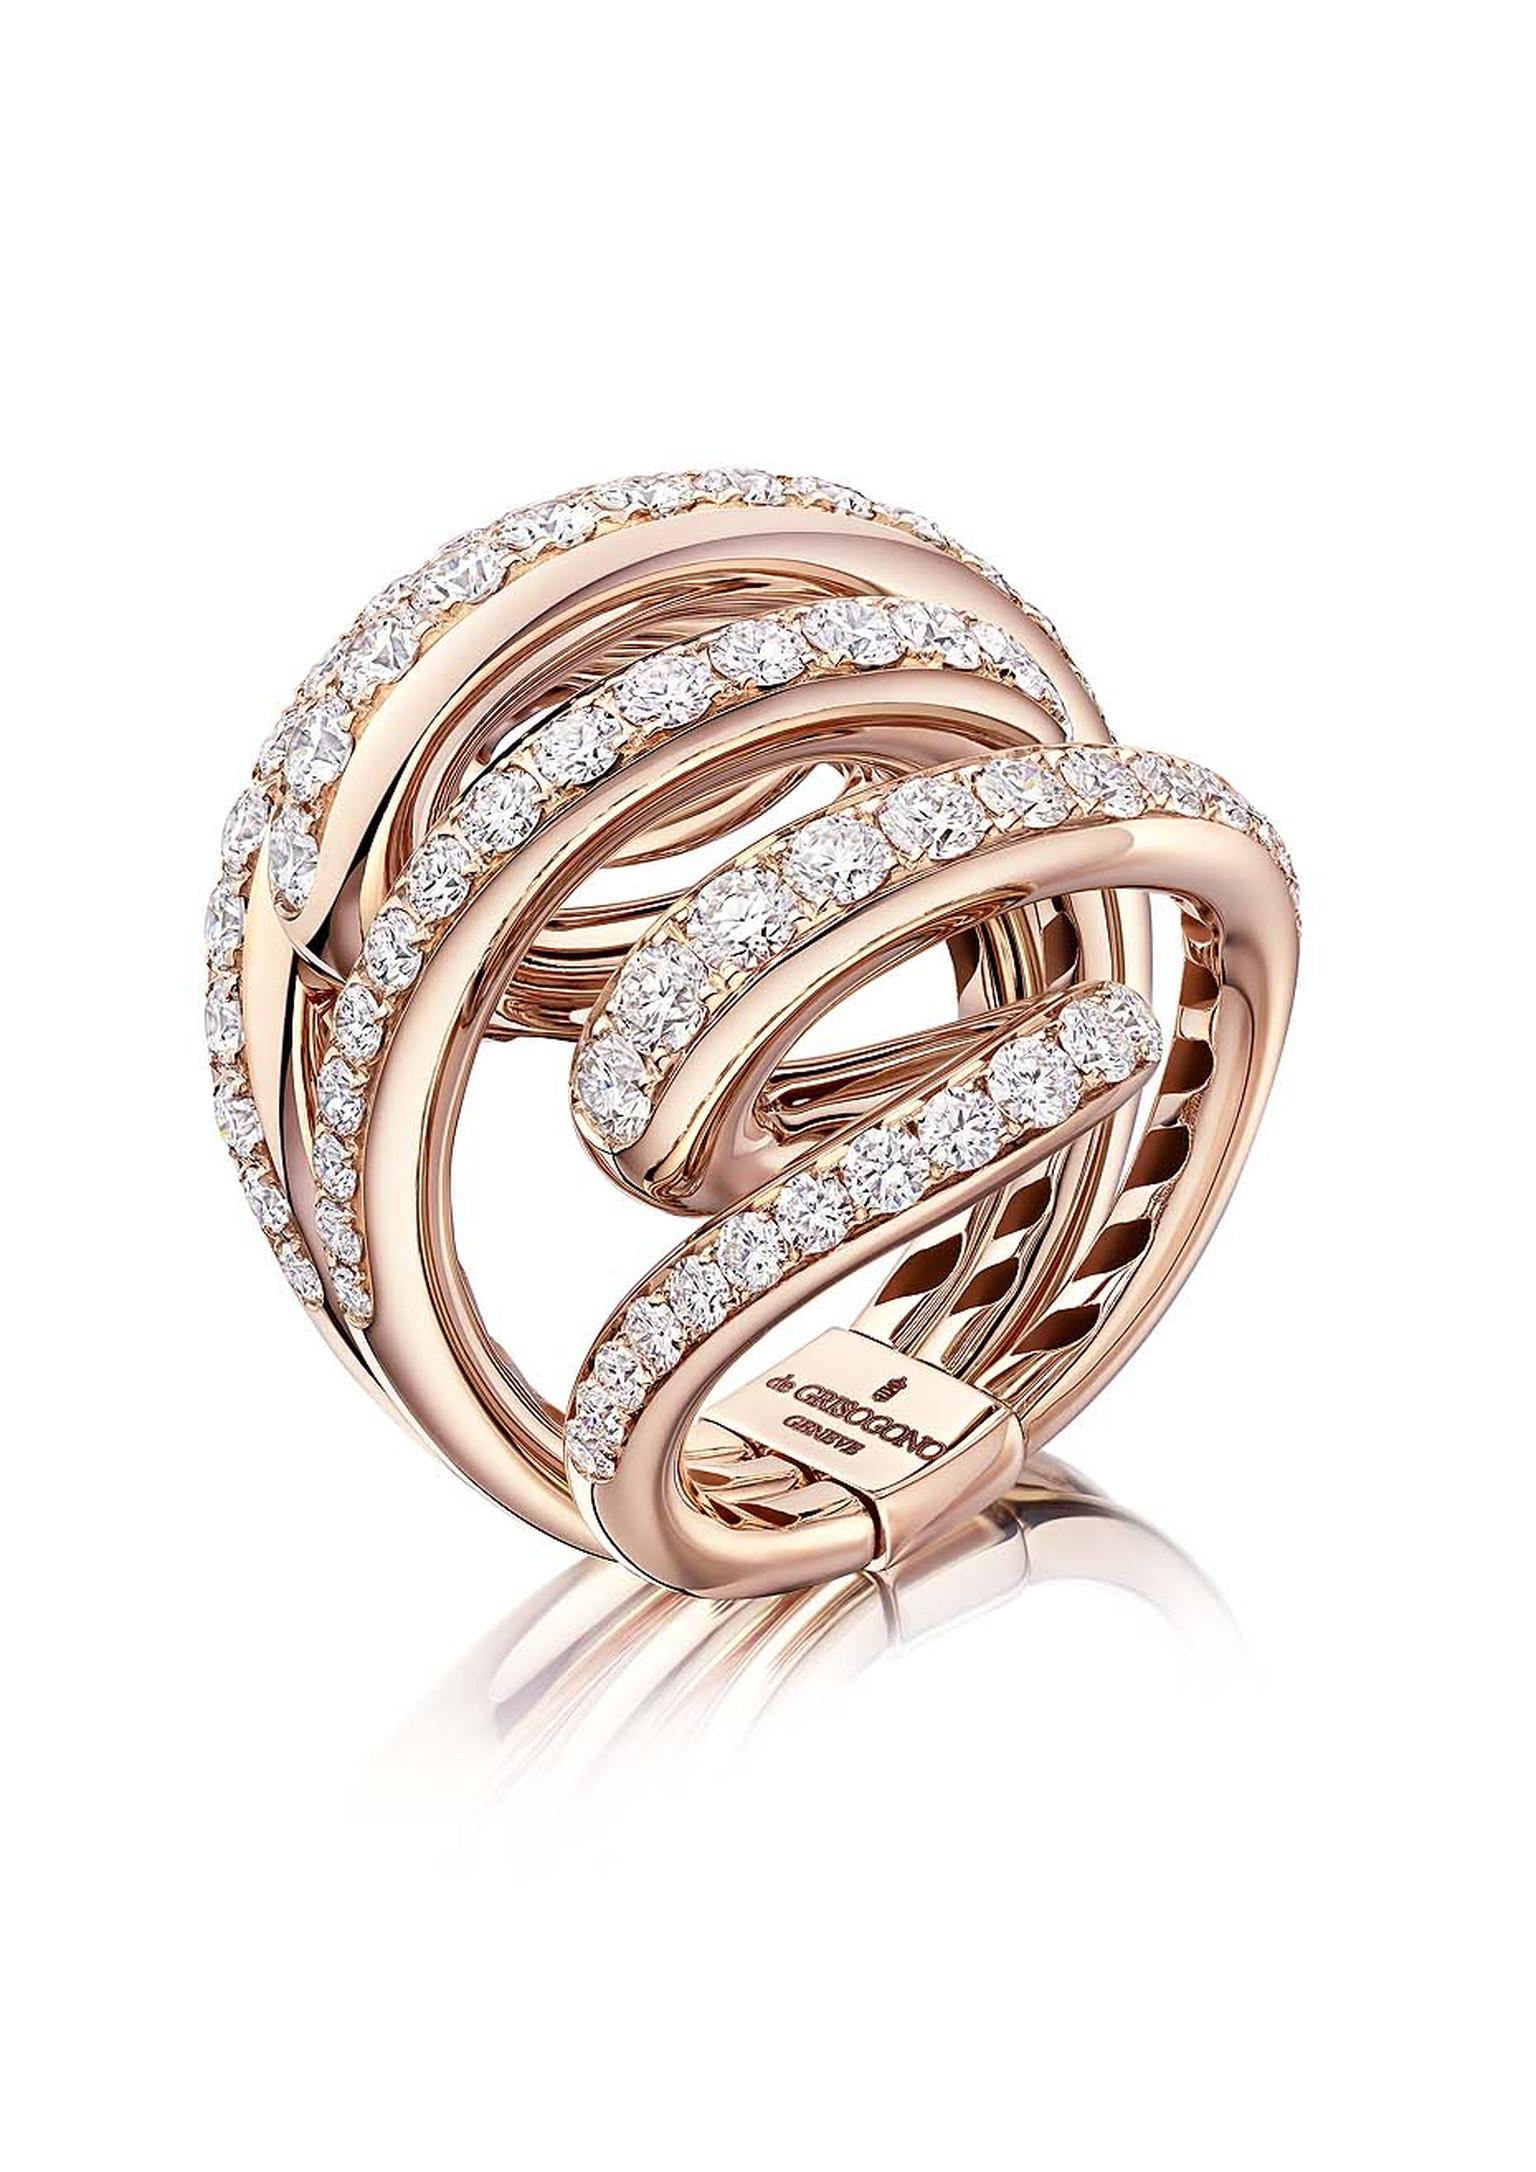 Rose gold de GRISOGONO ring from the new Vortice collection, set with 87 sparkling white diamonds.